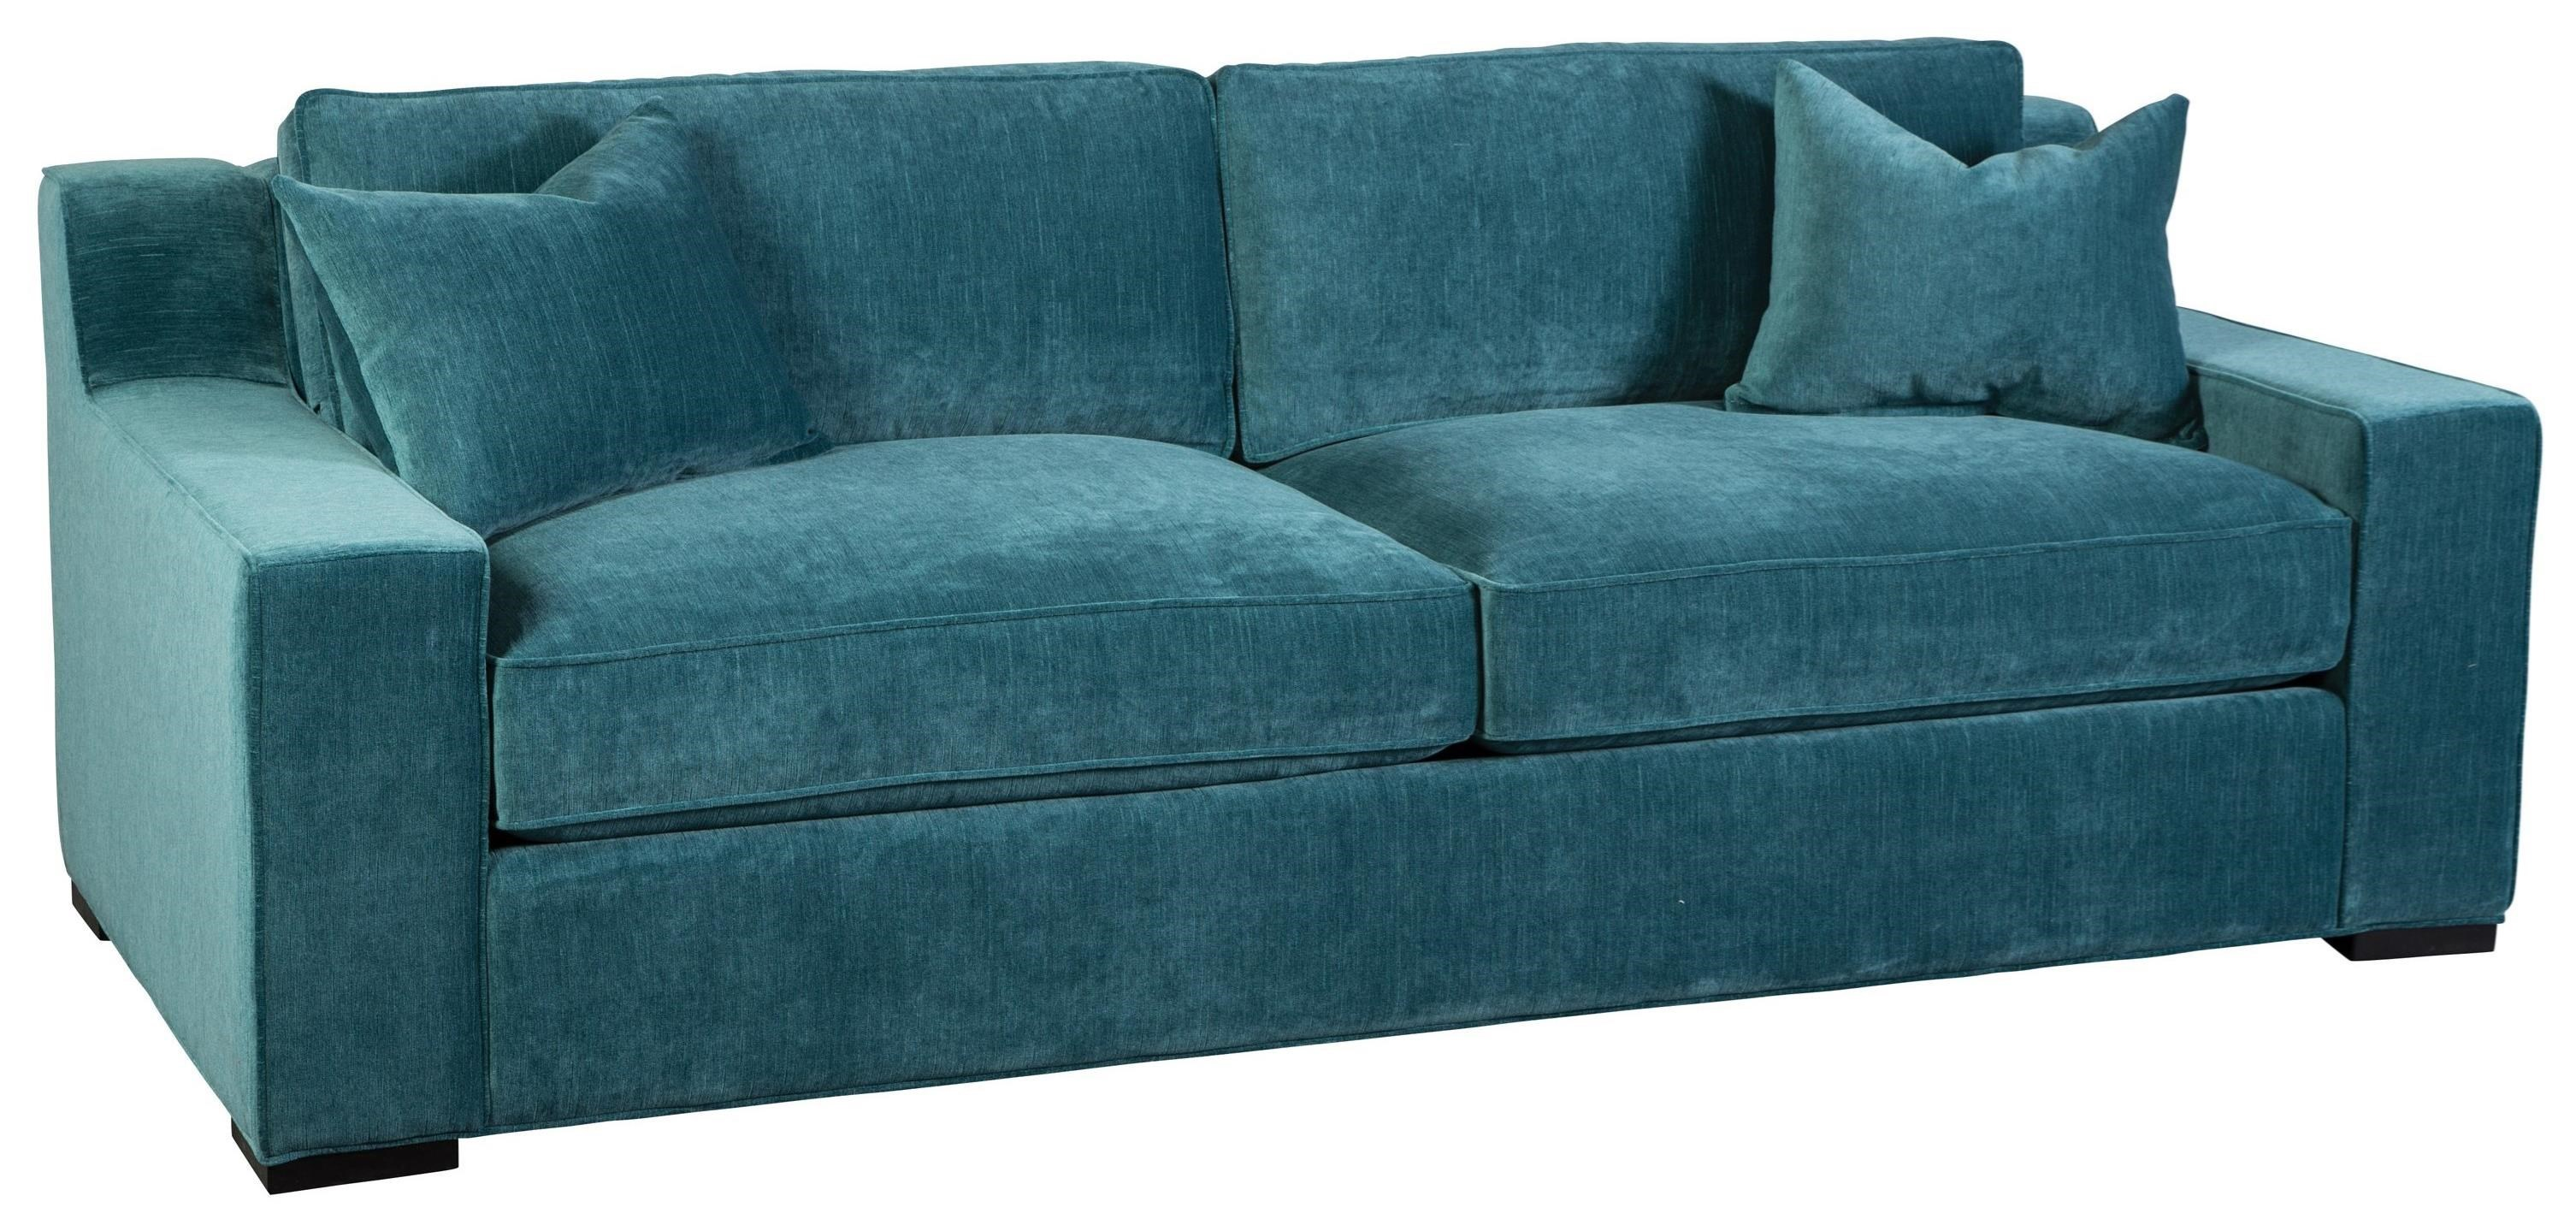 Good Jonathan Louis Morello Casual Sofa With Wide Track Arms